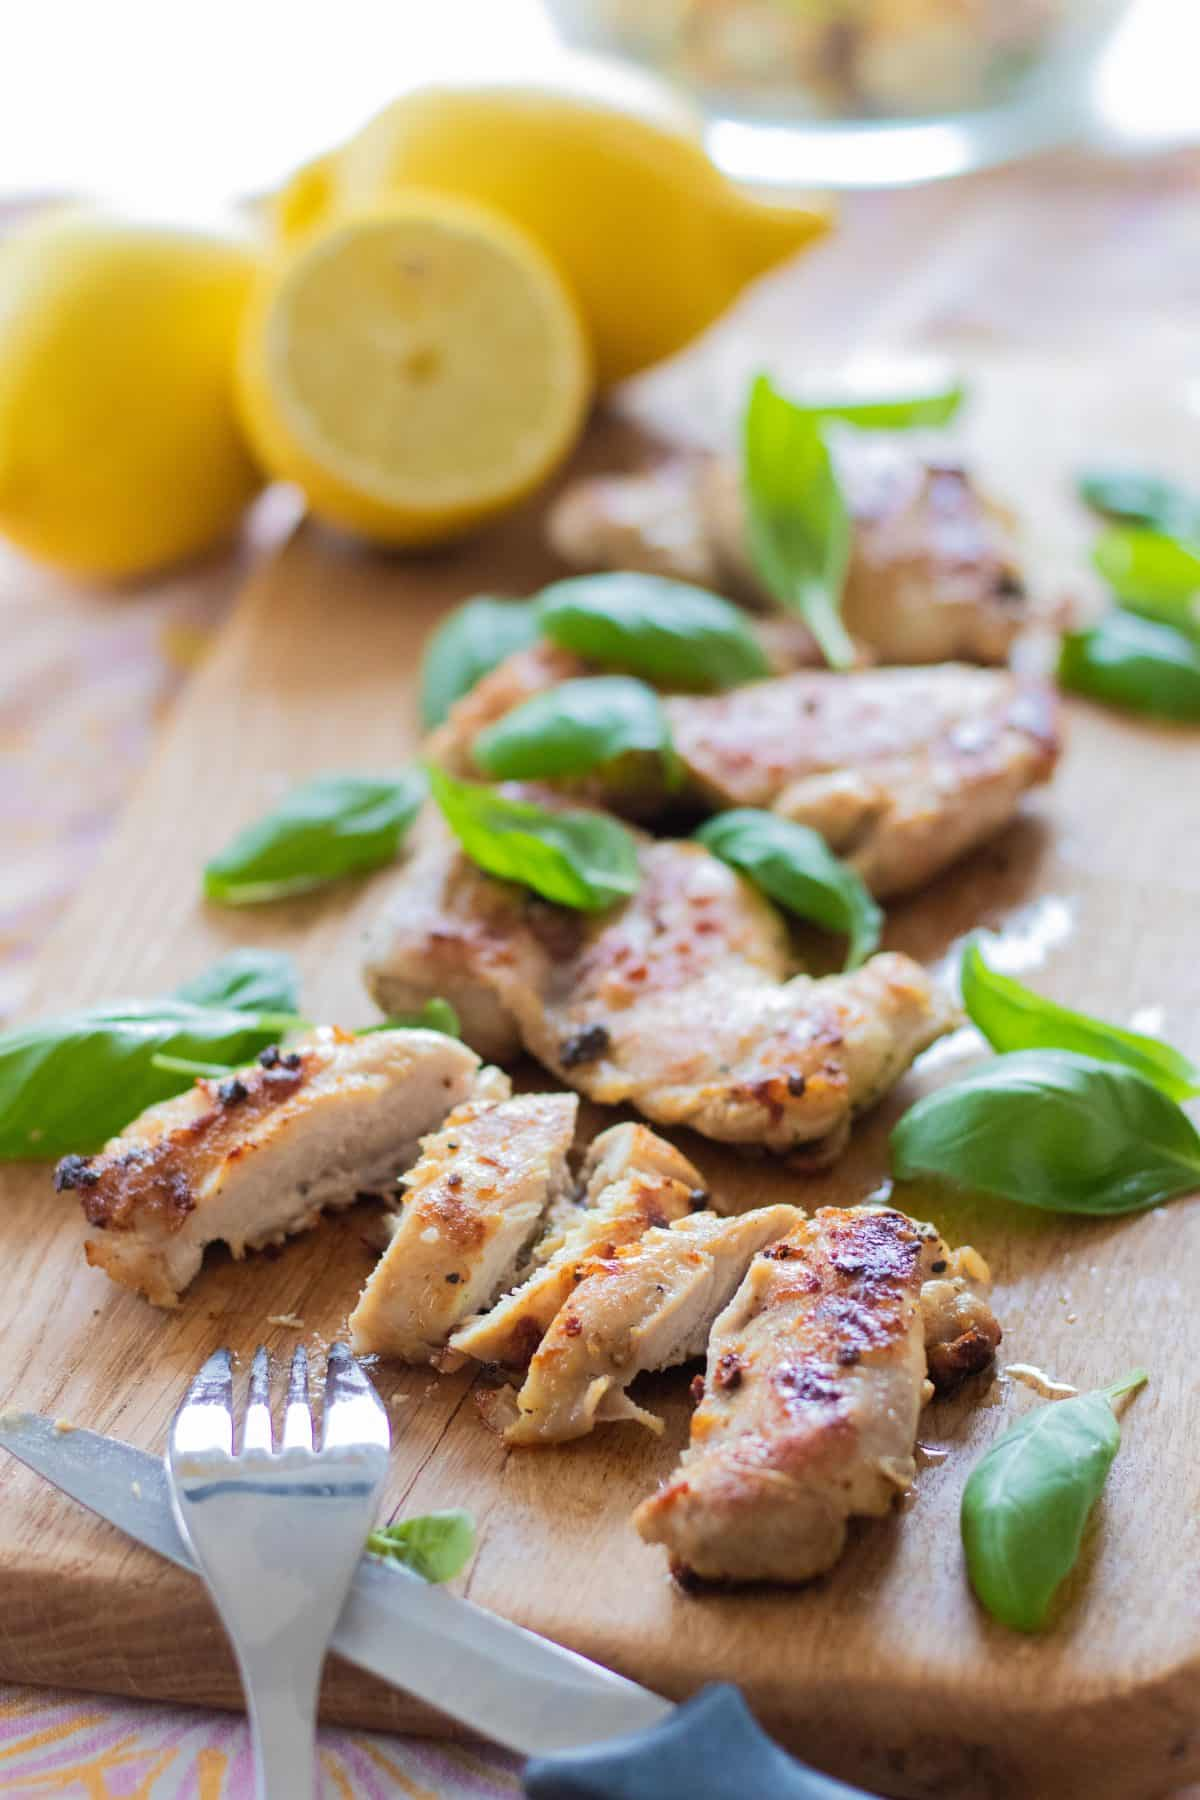 sideview of sliced grilled lemon marinated chicken with basil leaves and a knife and fork